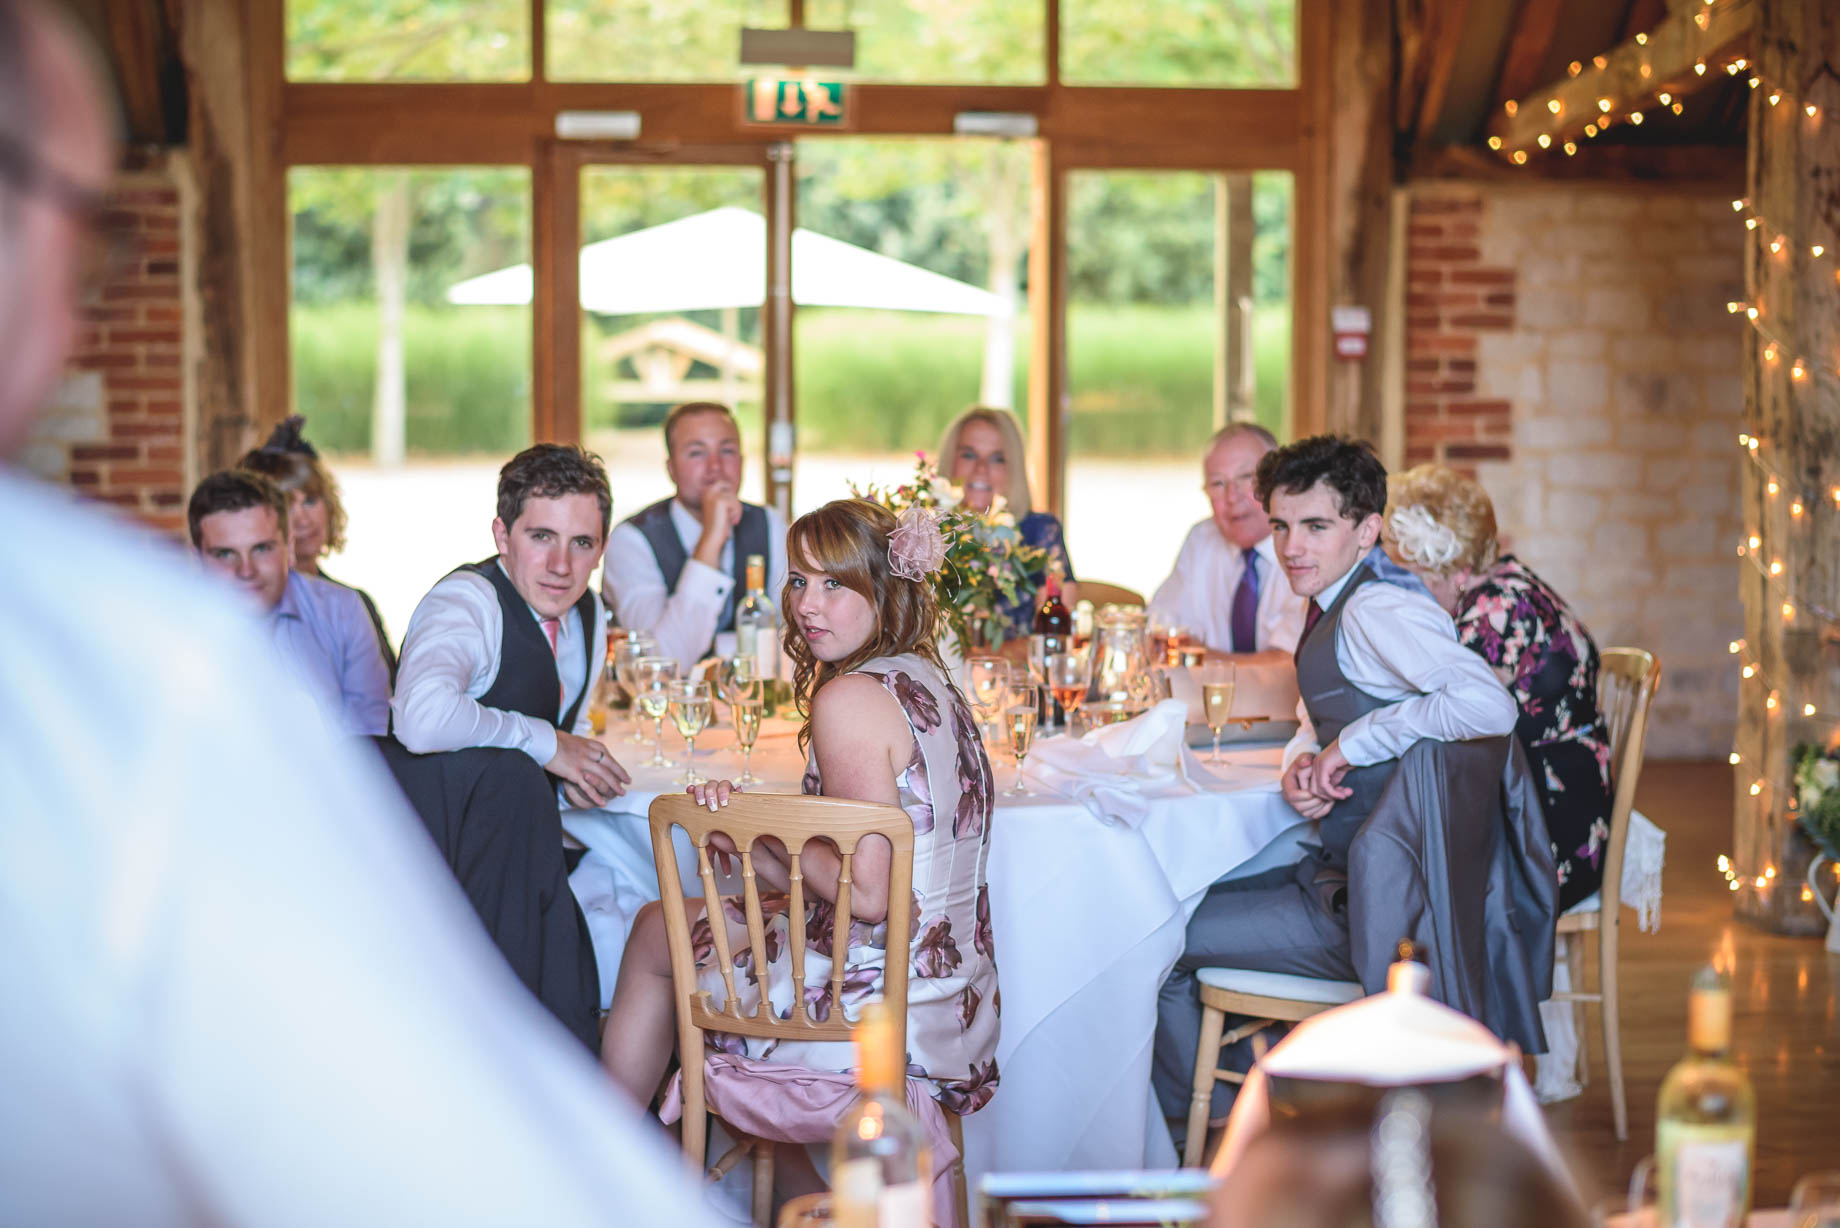 Bury Court Barn wedding photography - Guy Collier - Kirsty and Lewis (126 of 150)